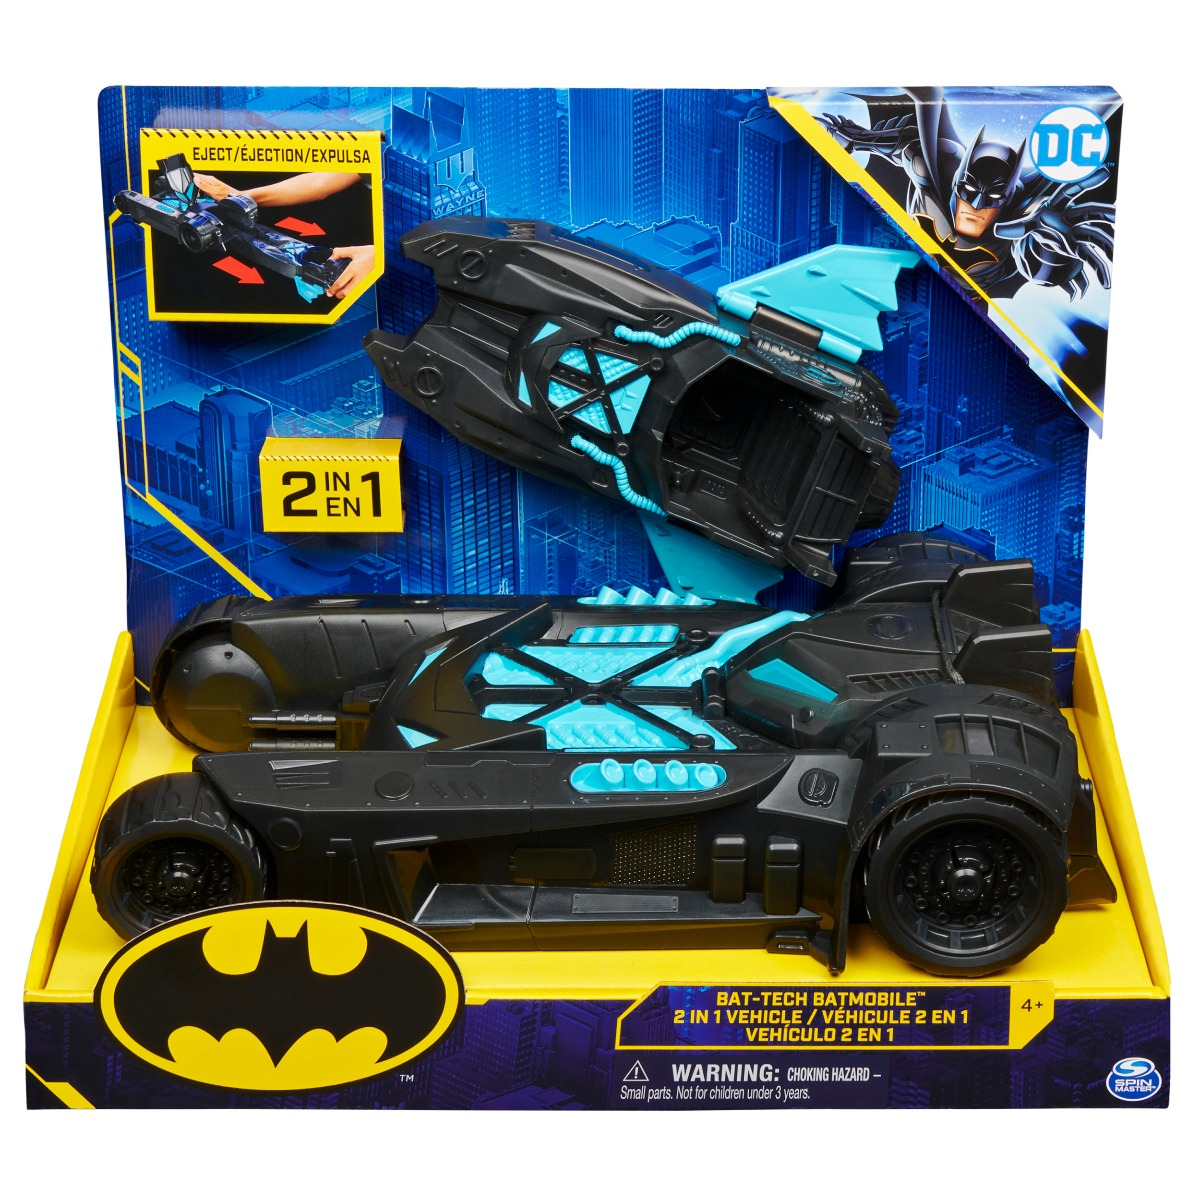 Masinuta 2 in 1 Batman, Bat-Tech Batmobile